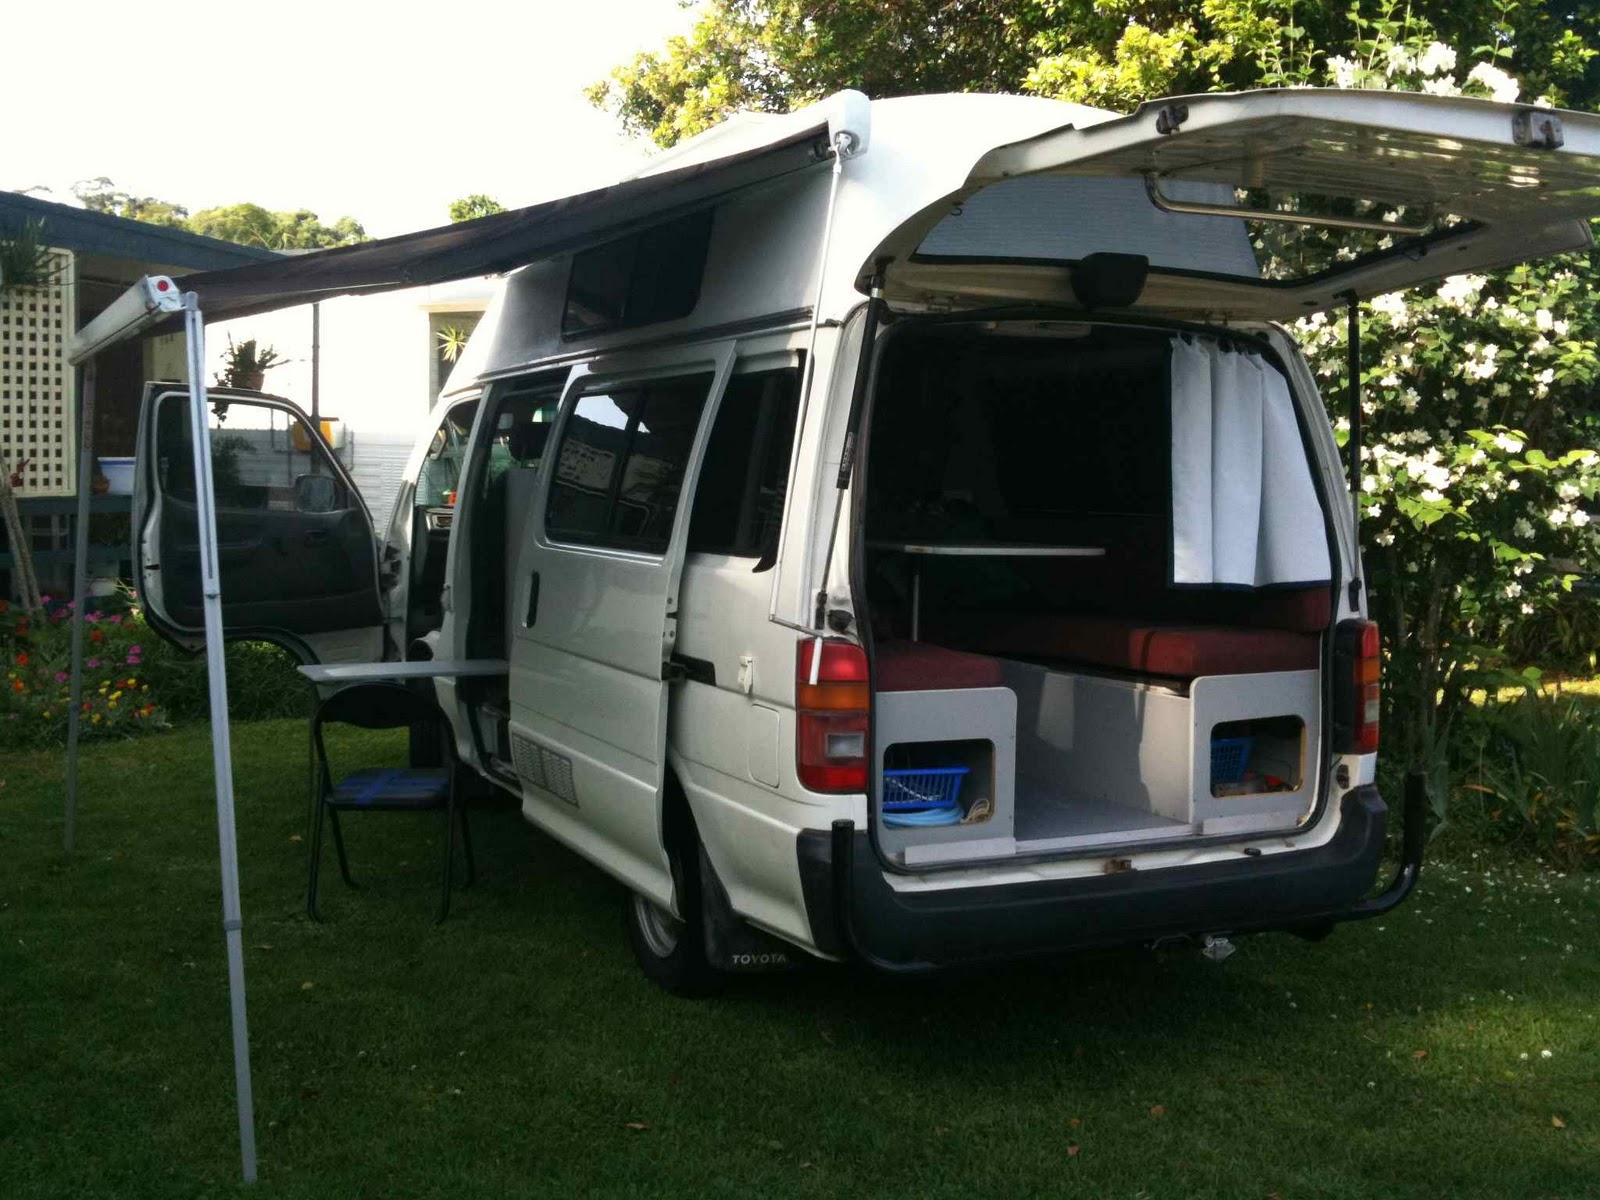 Vandelicious: life on the road: Vandelicious is For Sale ...